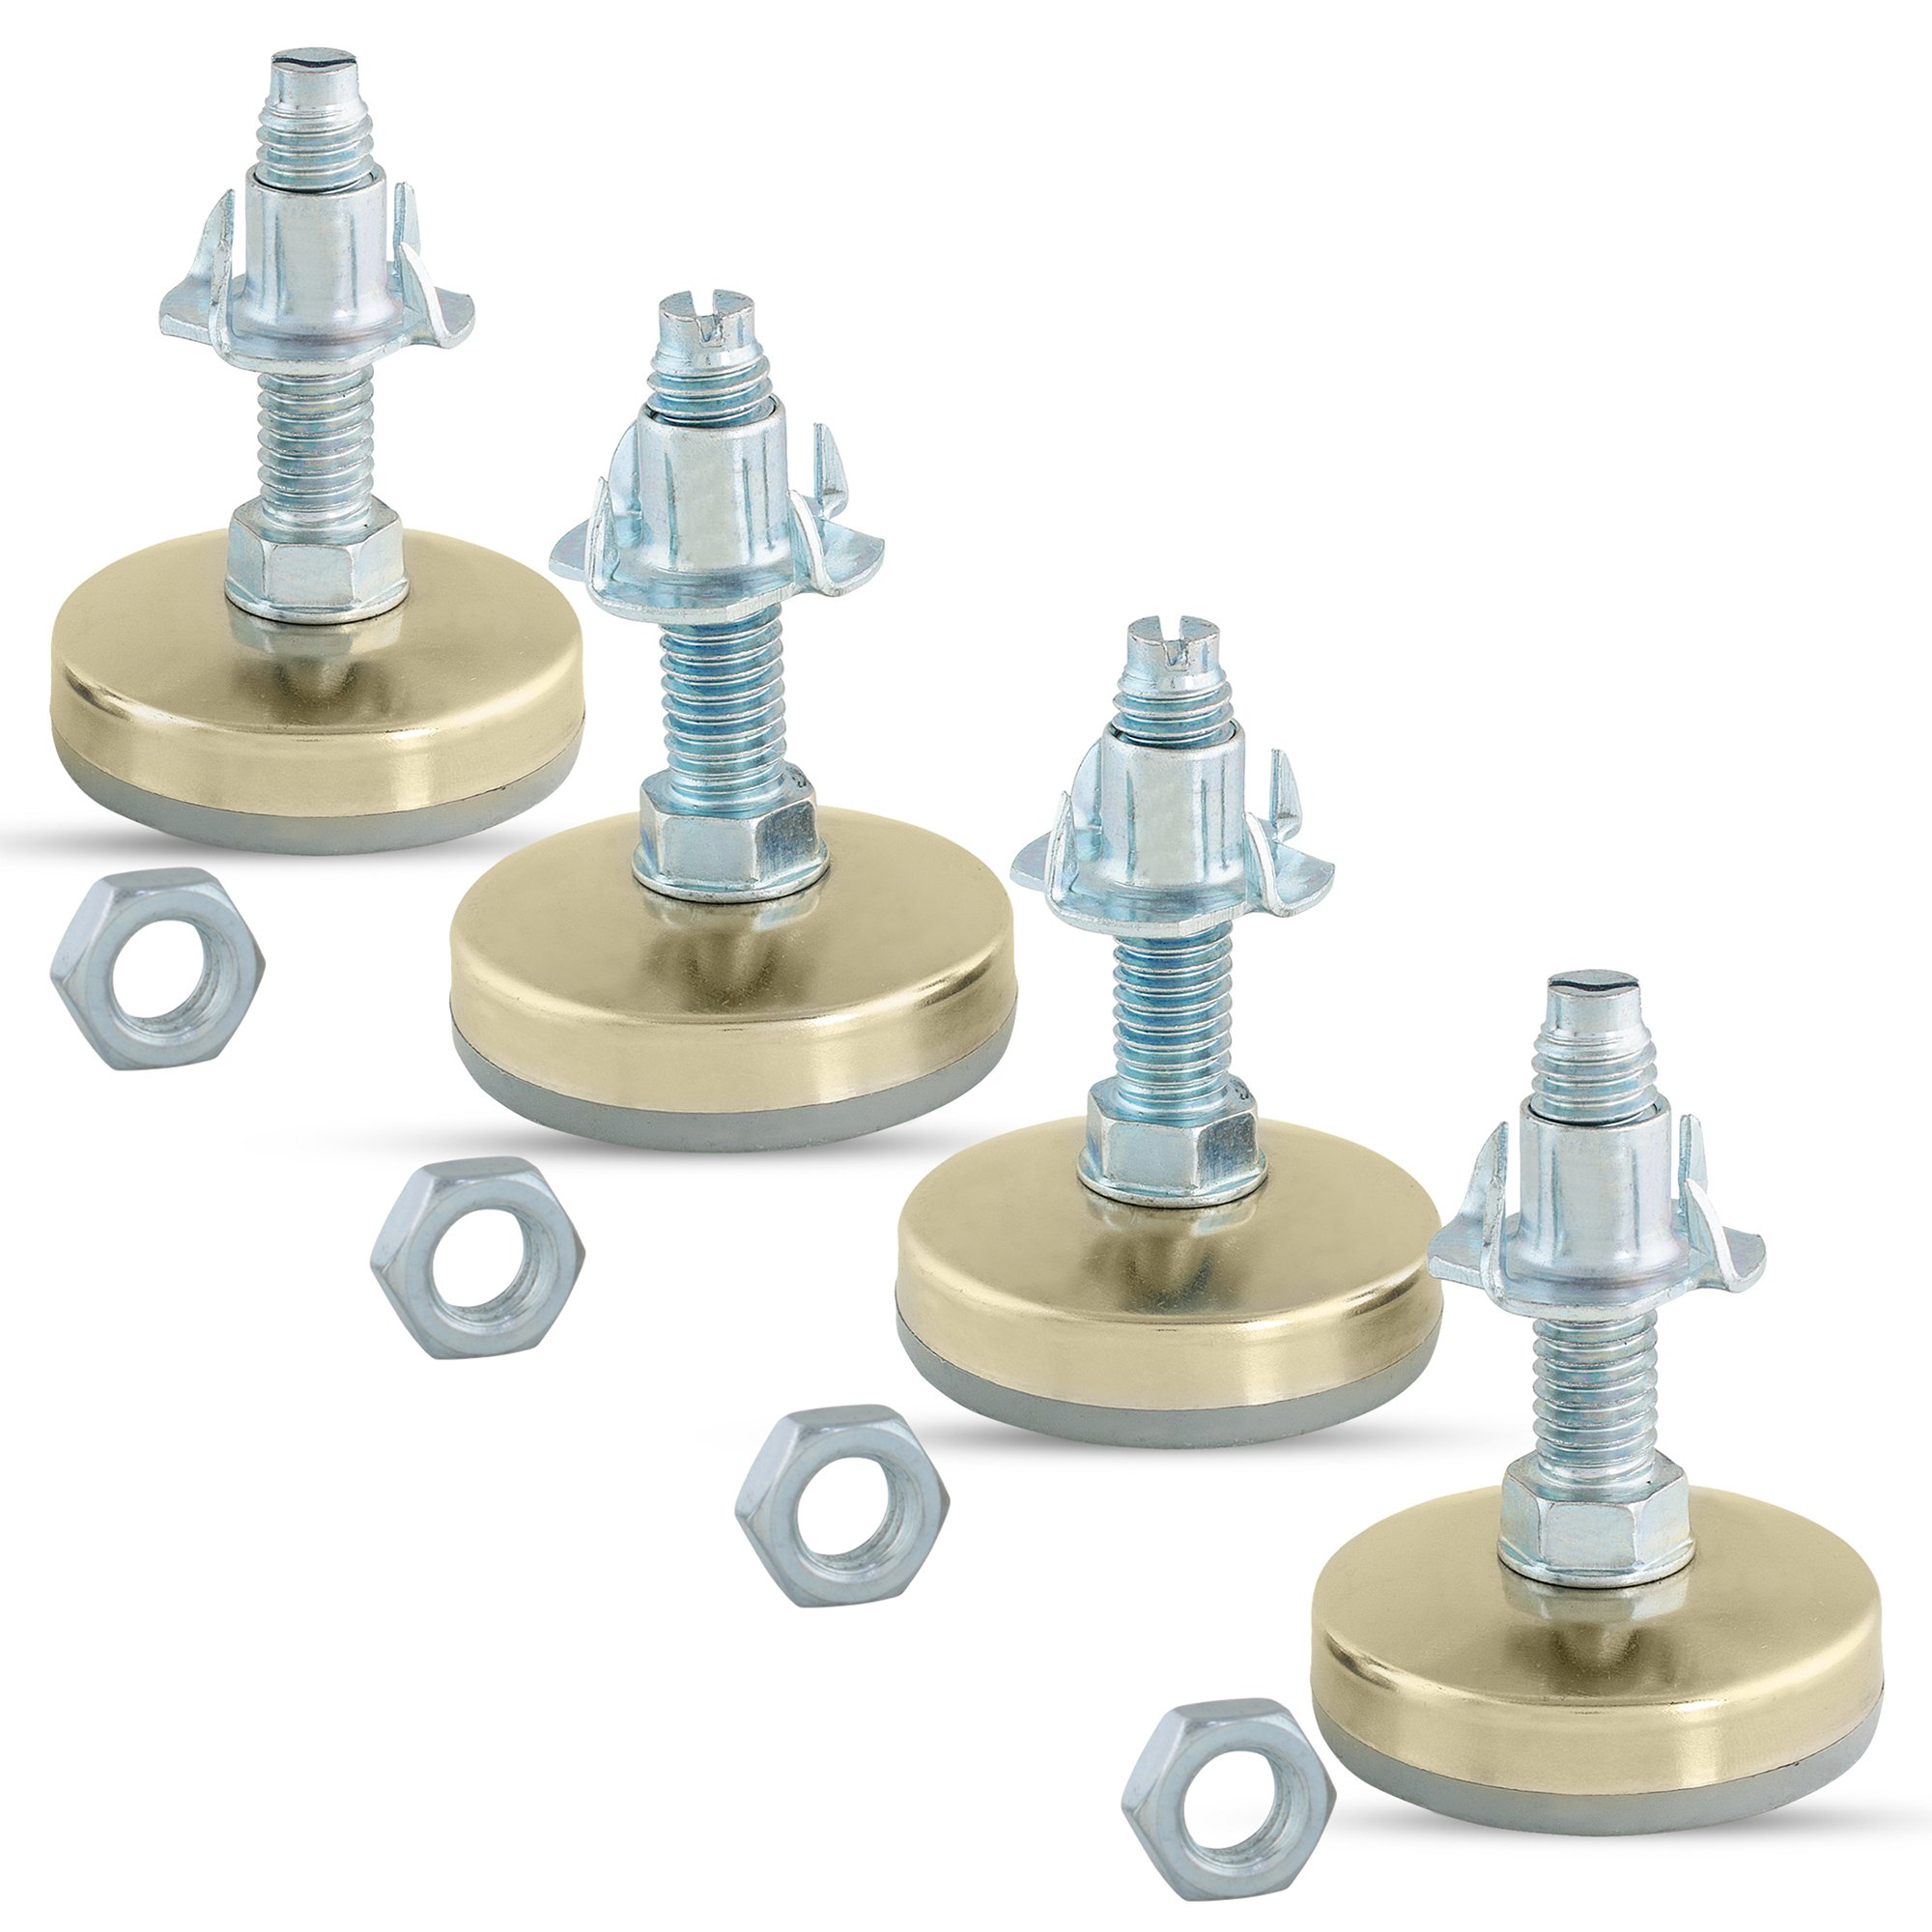 Heavy Duty Furniture Leveler Tee Nut Kit – Set of 4-3/8-16 Non-Skid Leg Levelers for Cabinets or Tables to Adjust Height of The Legs or Feet Jam Nuts to Stabilize Each Foot (Kit with 4 Prong T-Nuts) by Impromech Hardware (Image #2)